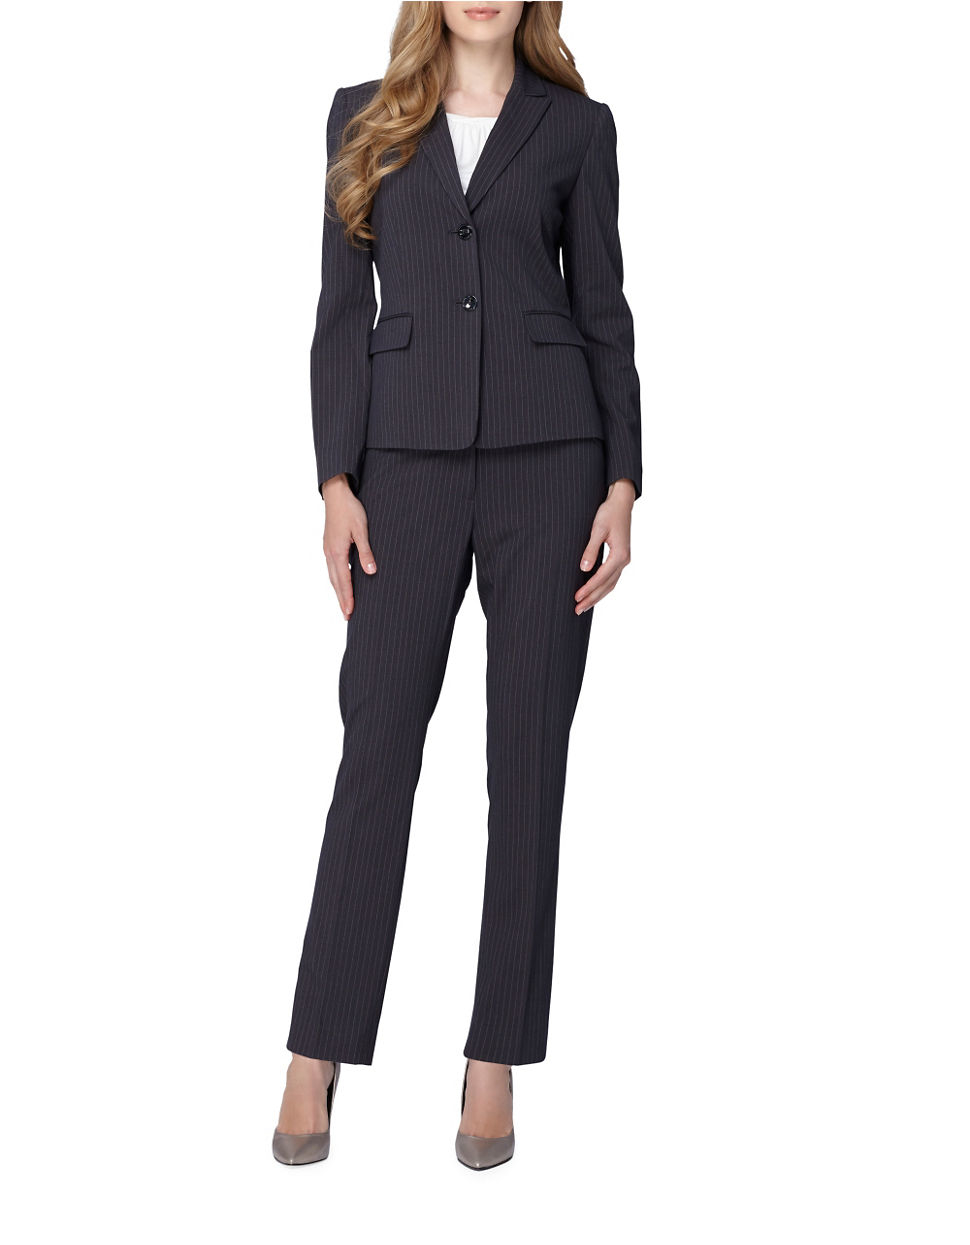 Creative Women Evening Pant Suits Brand New 2016 Ladies Trouser Suit Gray Black